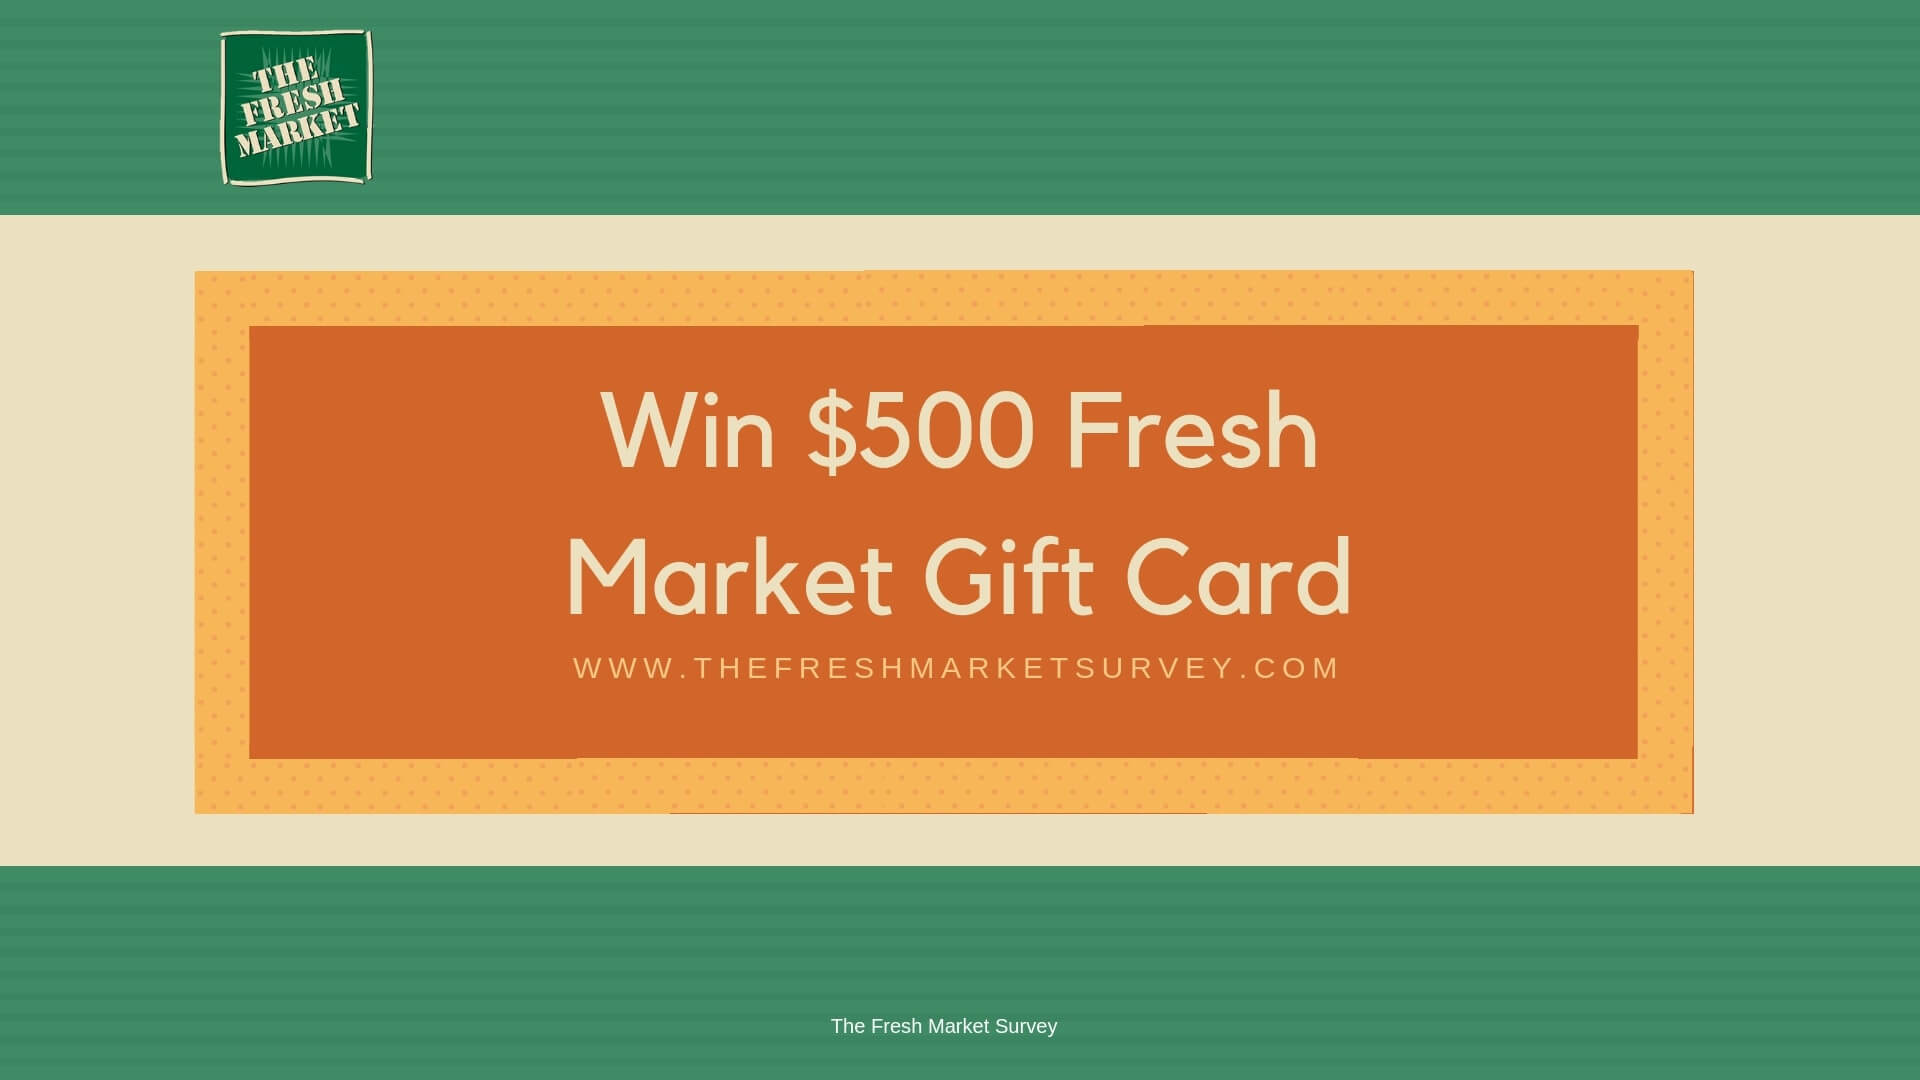 Thefreshmarketsurvey- Win $500 Fresh Market Gift Card